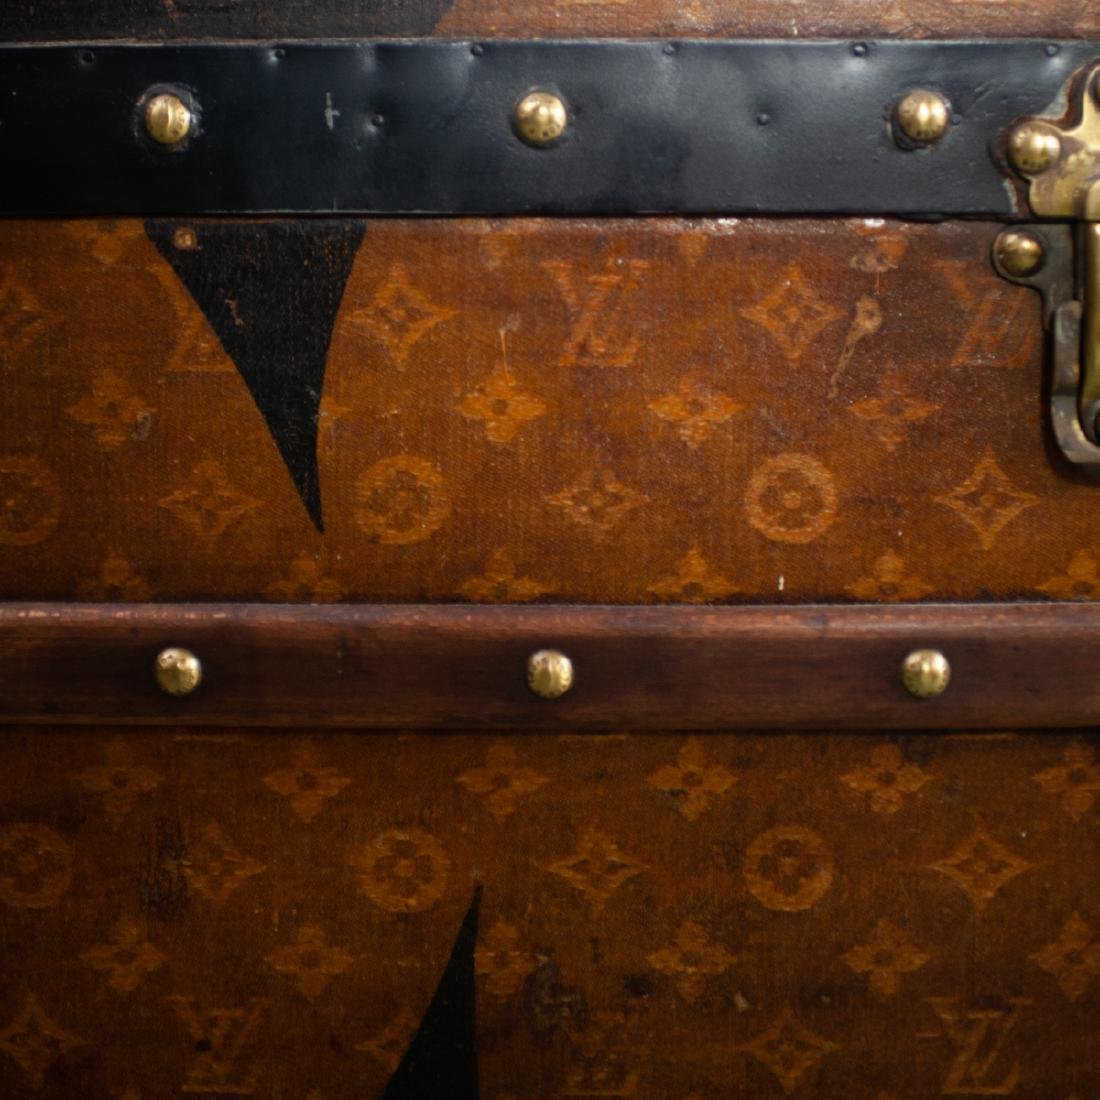 Louis Vuitton Steamer Trunk - 8